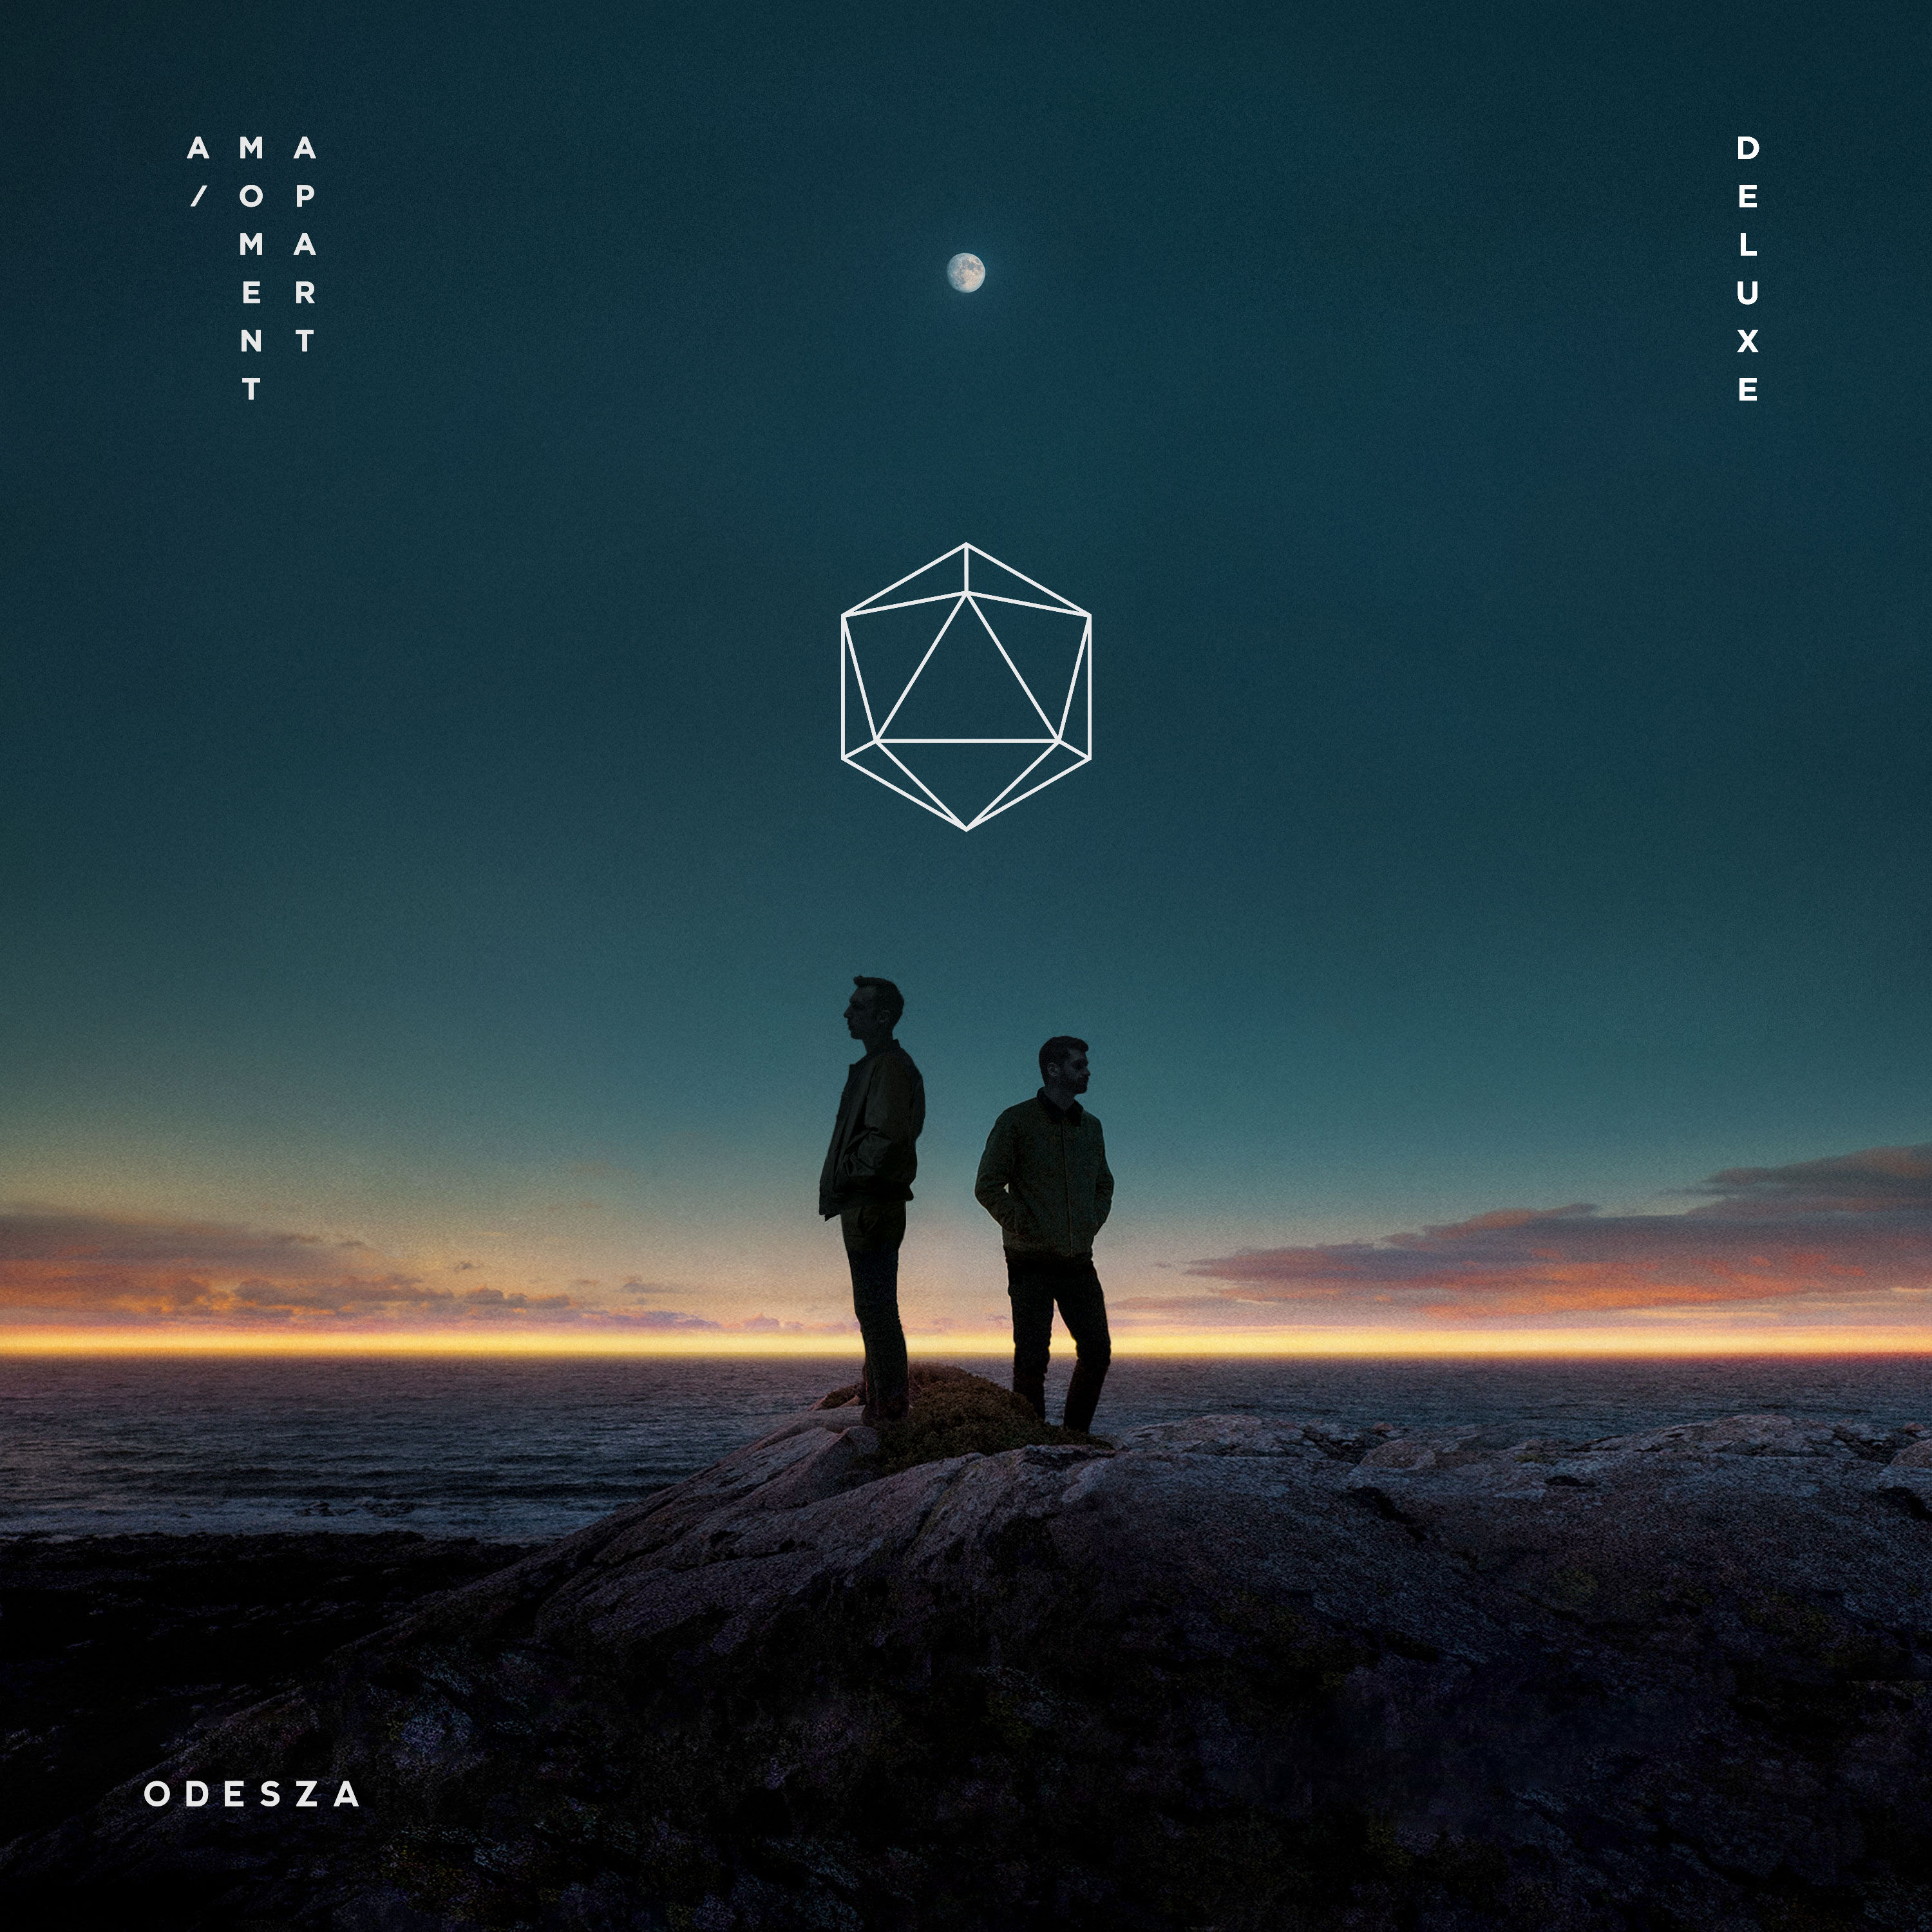 ODESZA - A Moment Apart (Deluxe) [3000x3000]